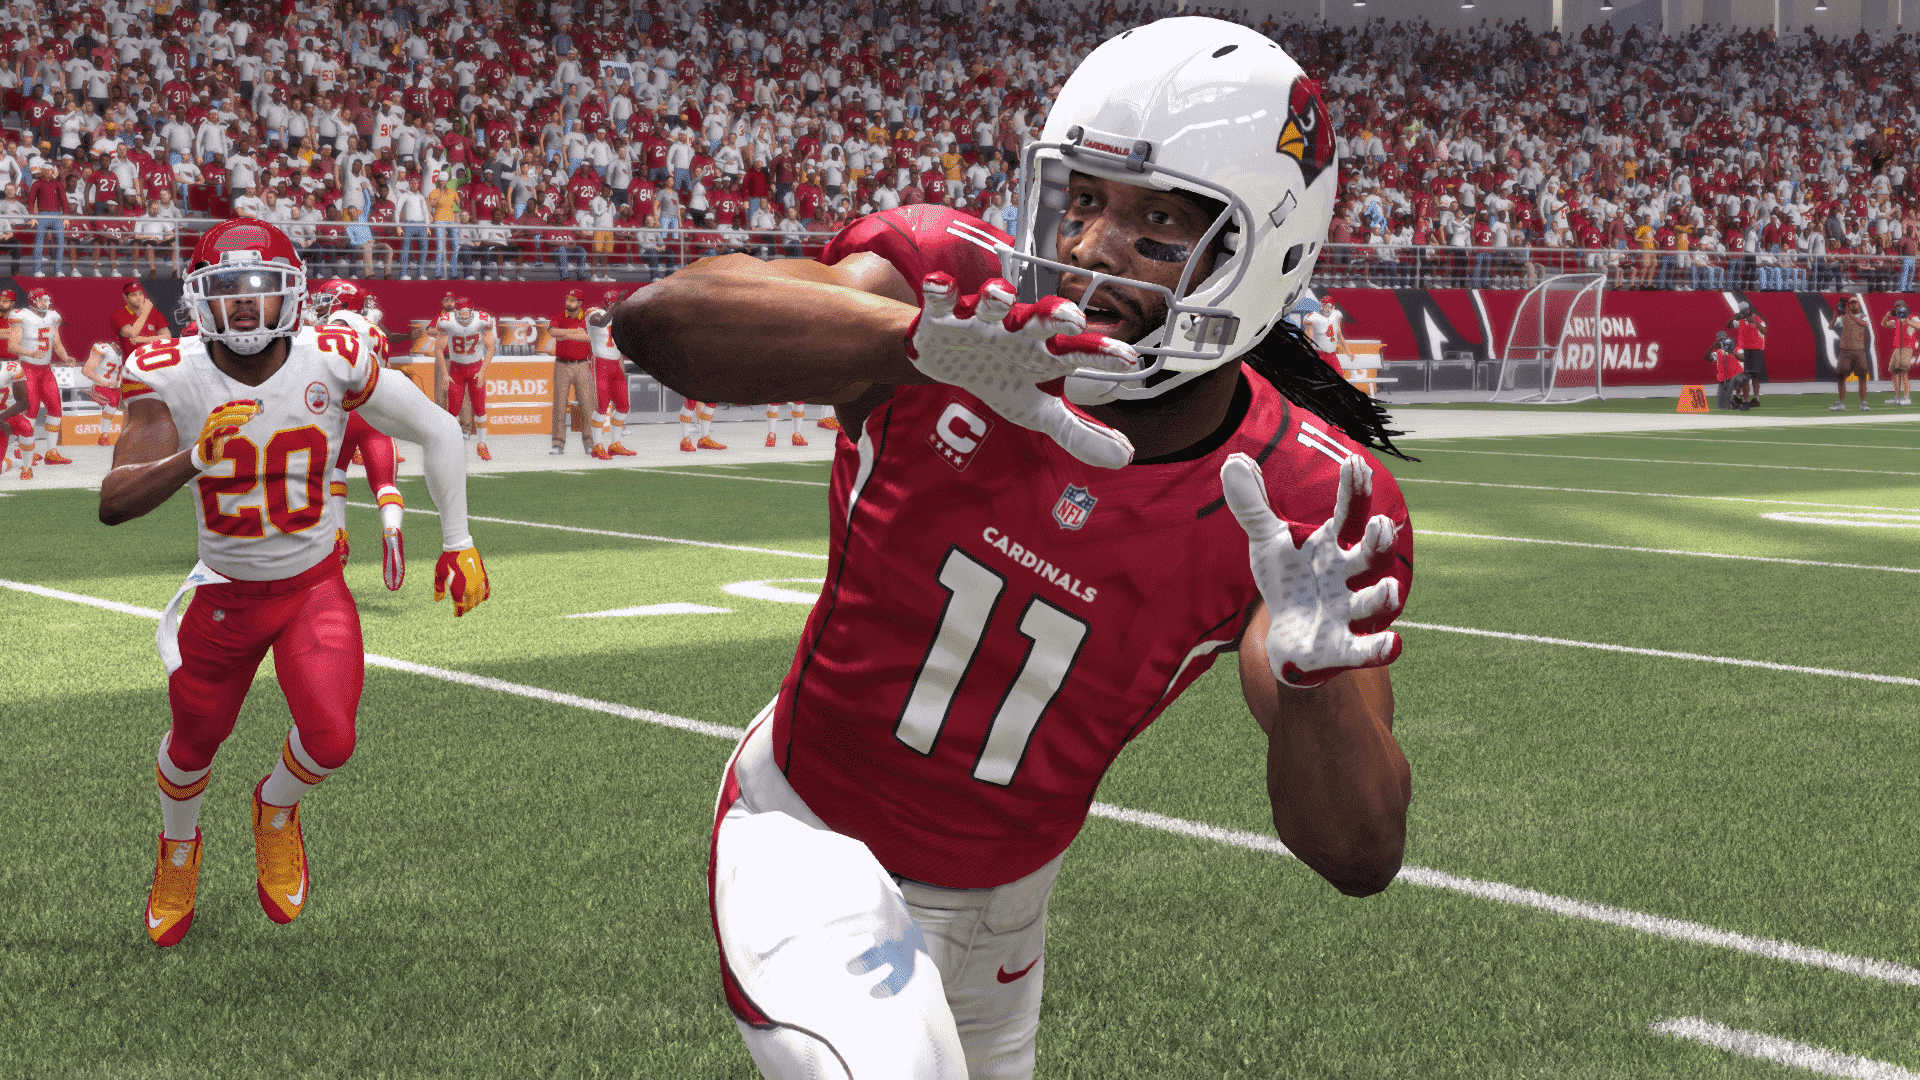 Madden-17-Larry-Fitzgerald-2016-12-16 23-14-05